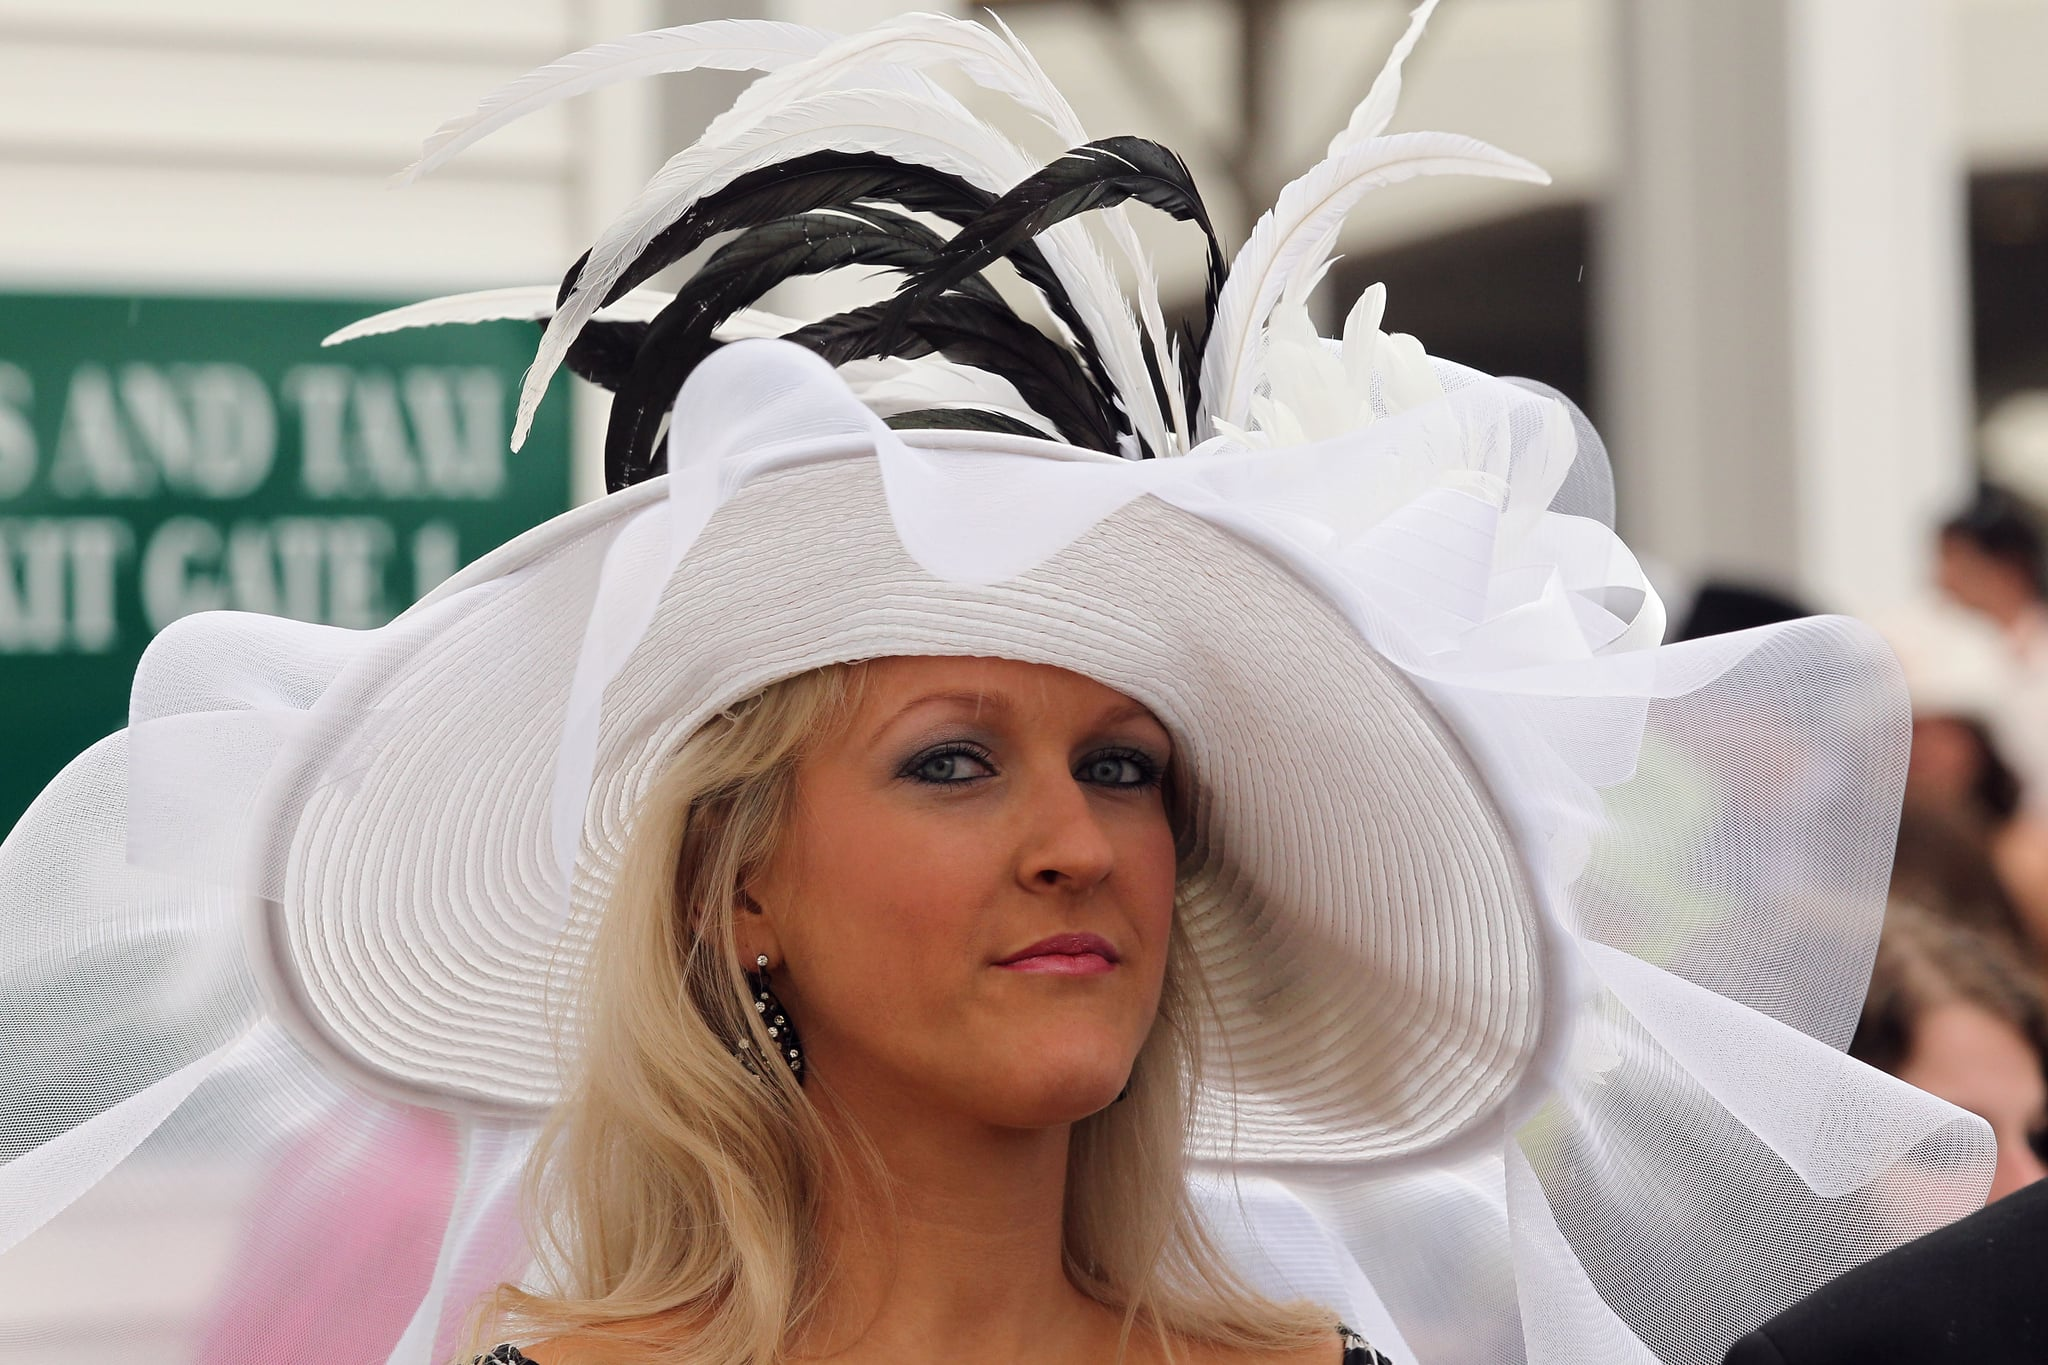 In 2011, this hat would surely block some views.